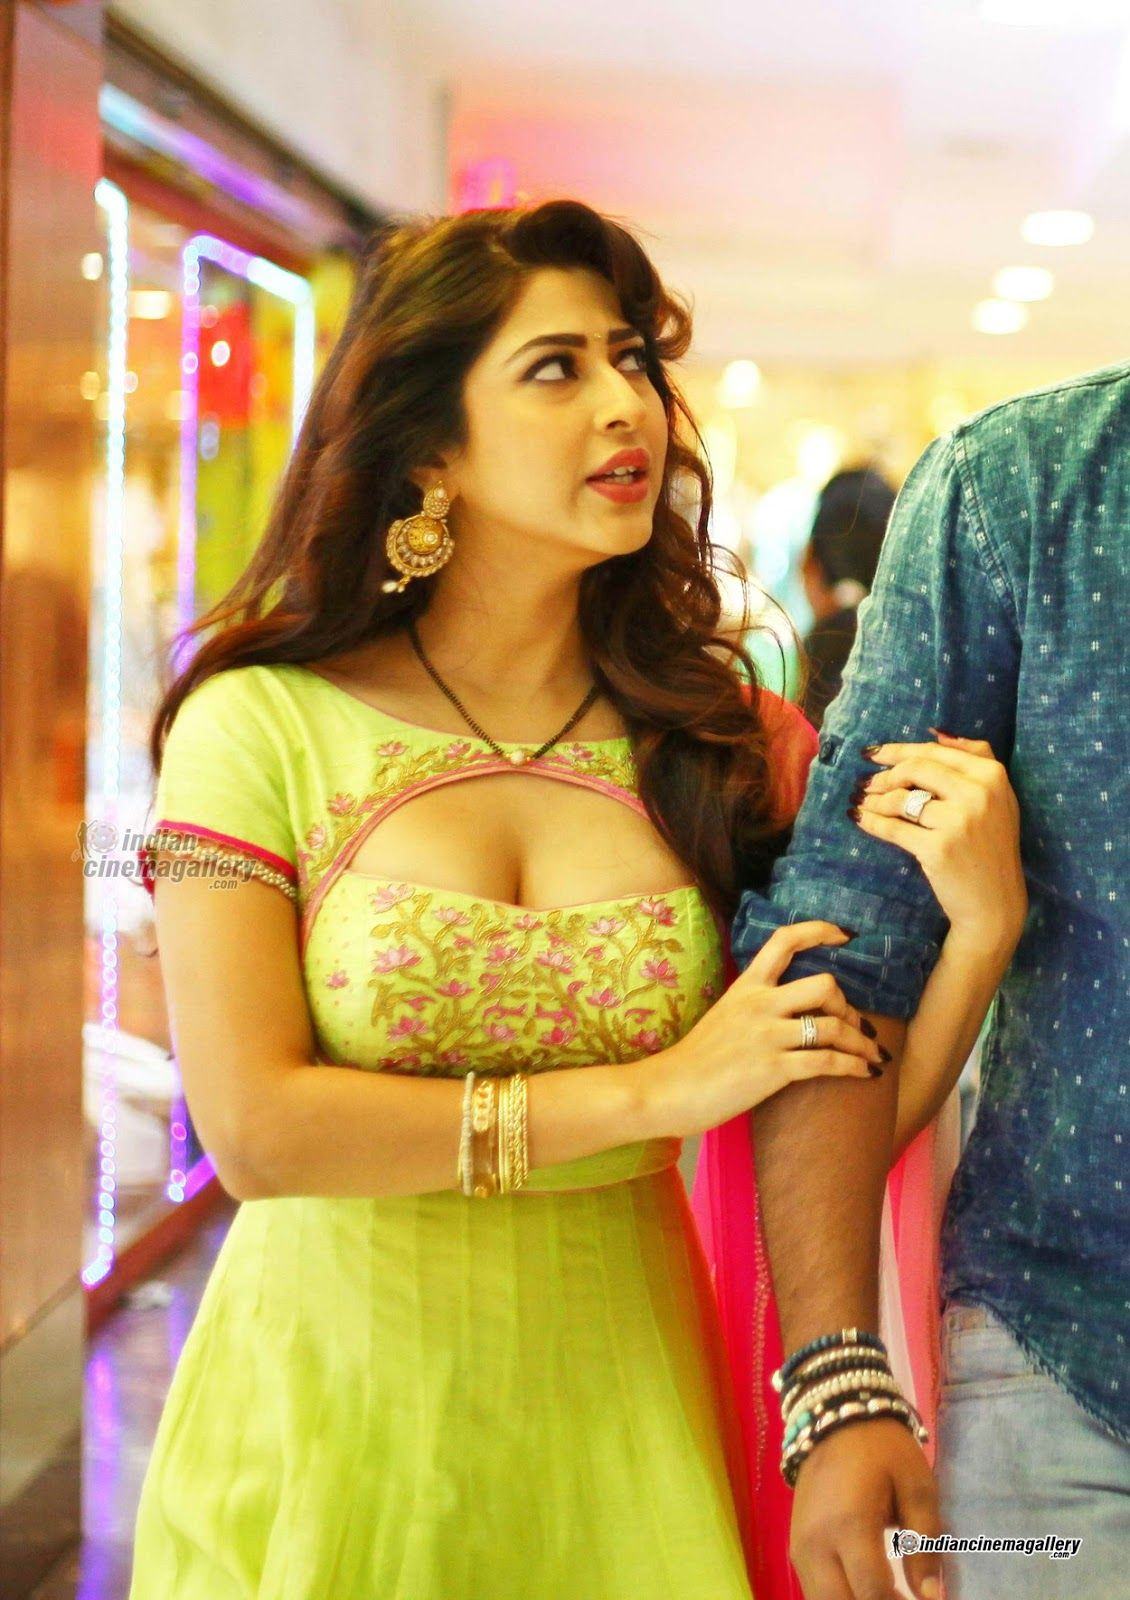 The Hot Tv Actress Sonarika Bhadoriya Hot Look Never Seen Before With Seducing Bikini Collection She Spreading Hotness In Environment With H